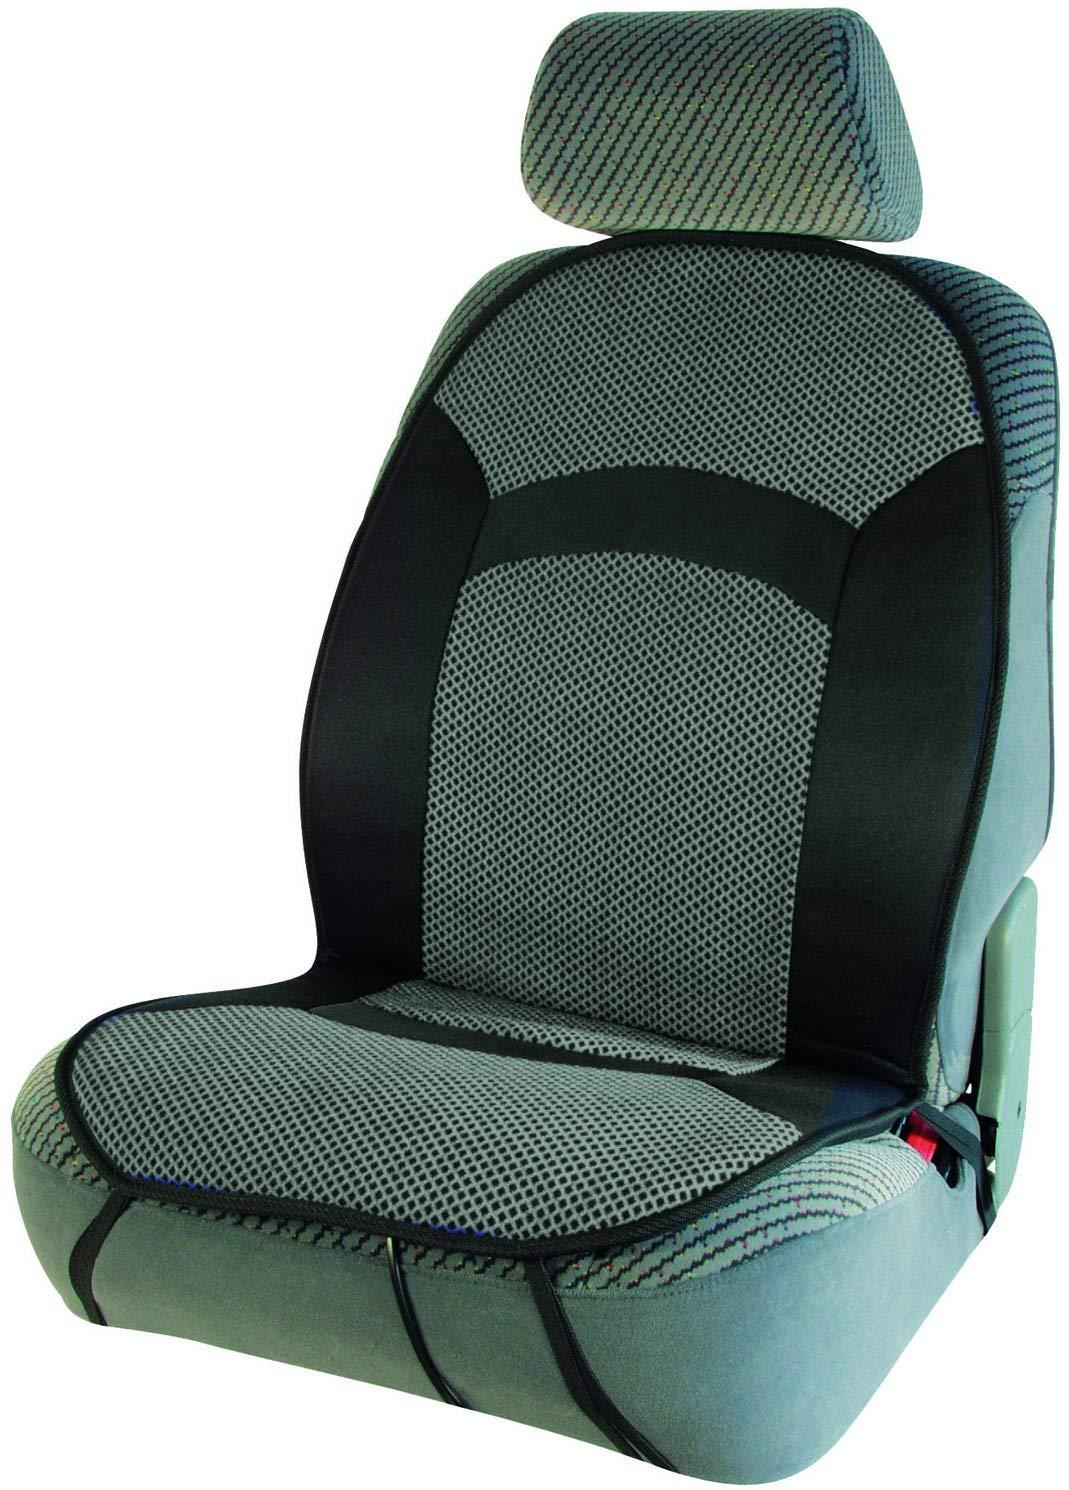 Heated Seat Cover 96146 CARTREND 96146 original quality